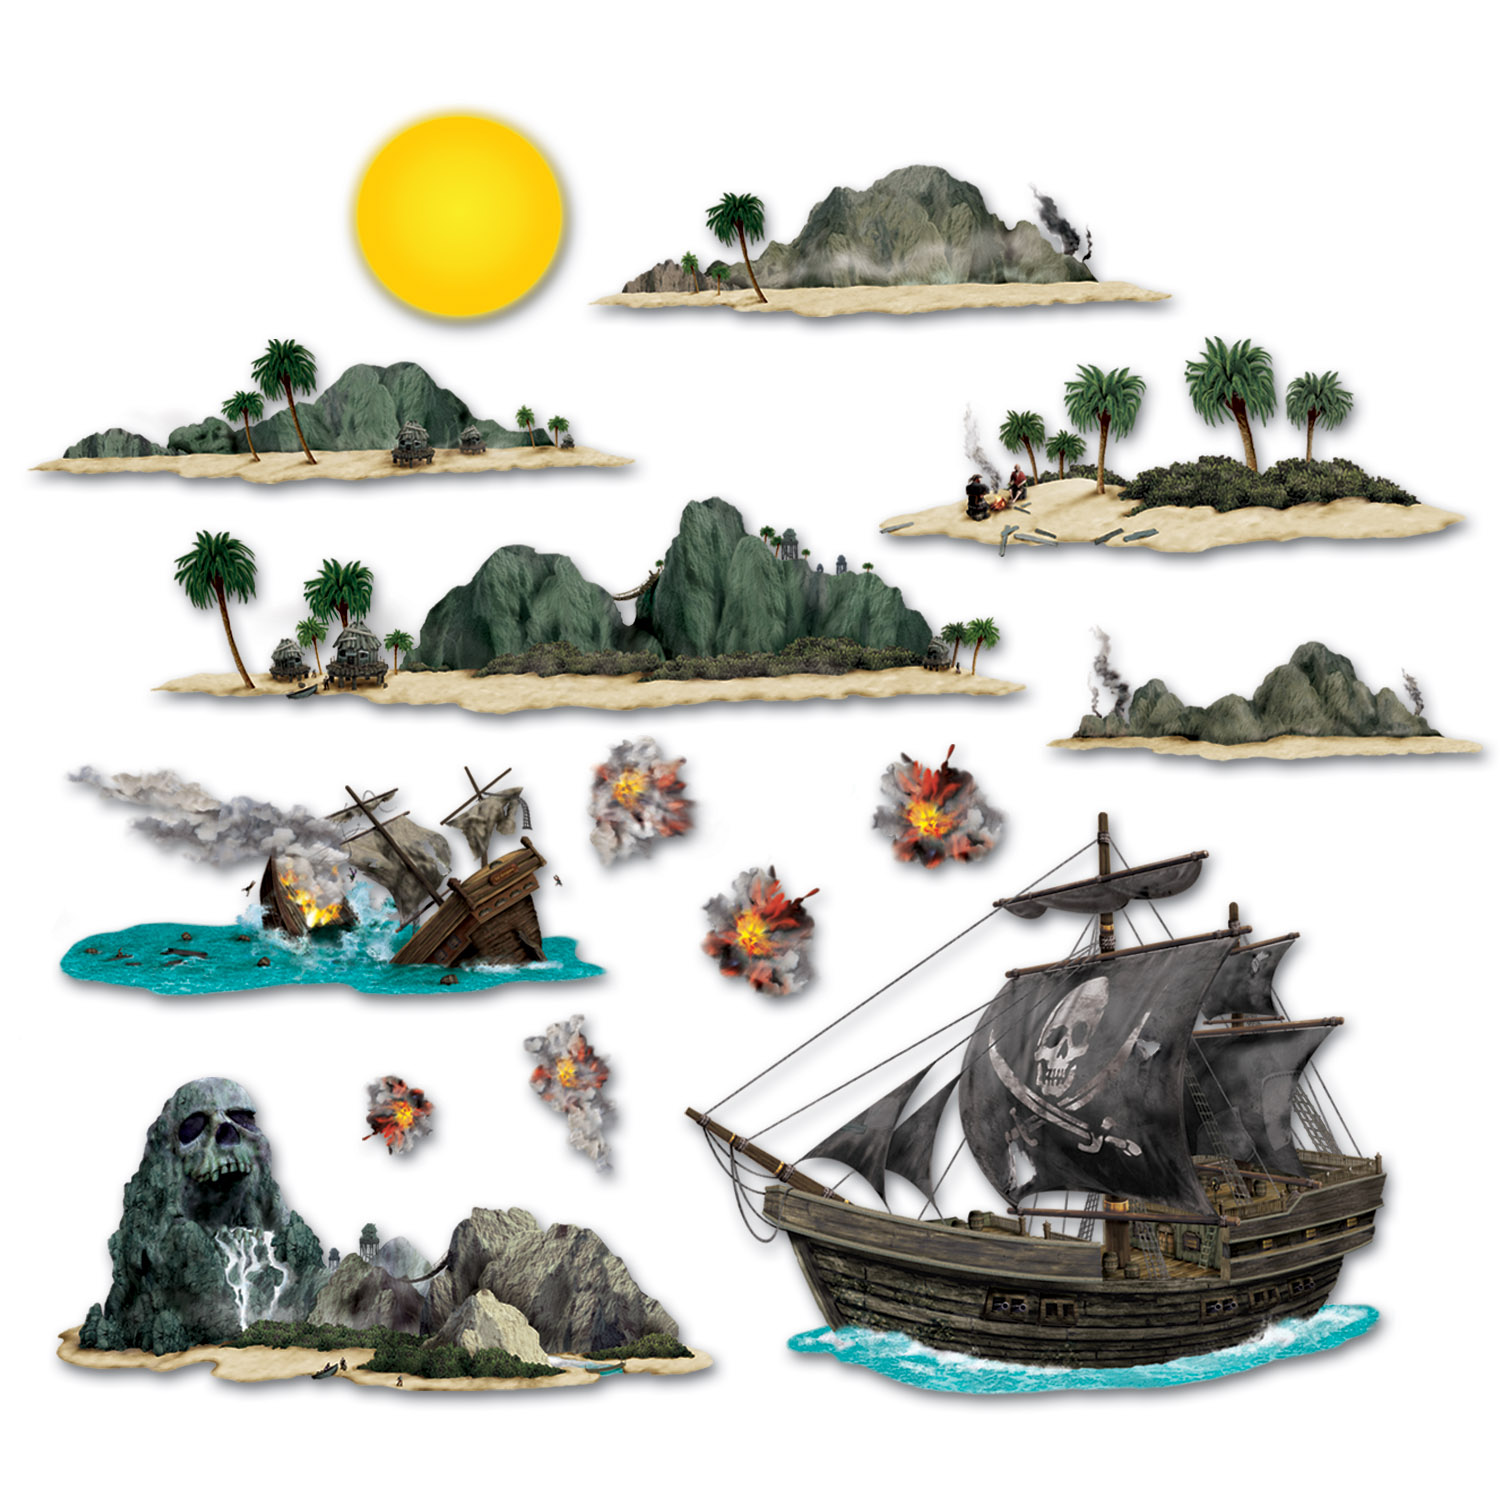 Pirate Ship & Island Props  Pirate Ship, Pirate Props, Island Decor, Ship Props, Island Decorations, Pirate party ideas, Pirate birthday, Wholesale party supplies, Inexpensive party decor, Cheap decorations, Pirate theme, Birthday supplies, Cheap birthday decorations